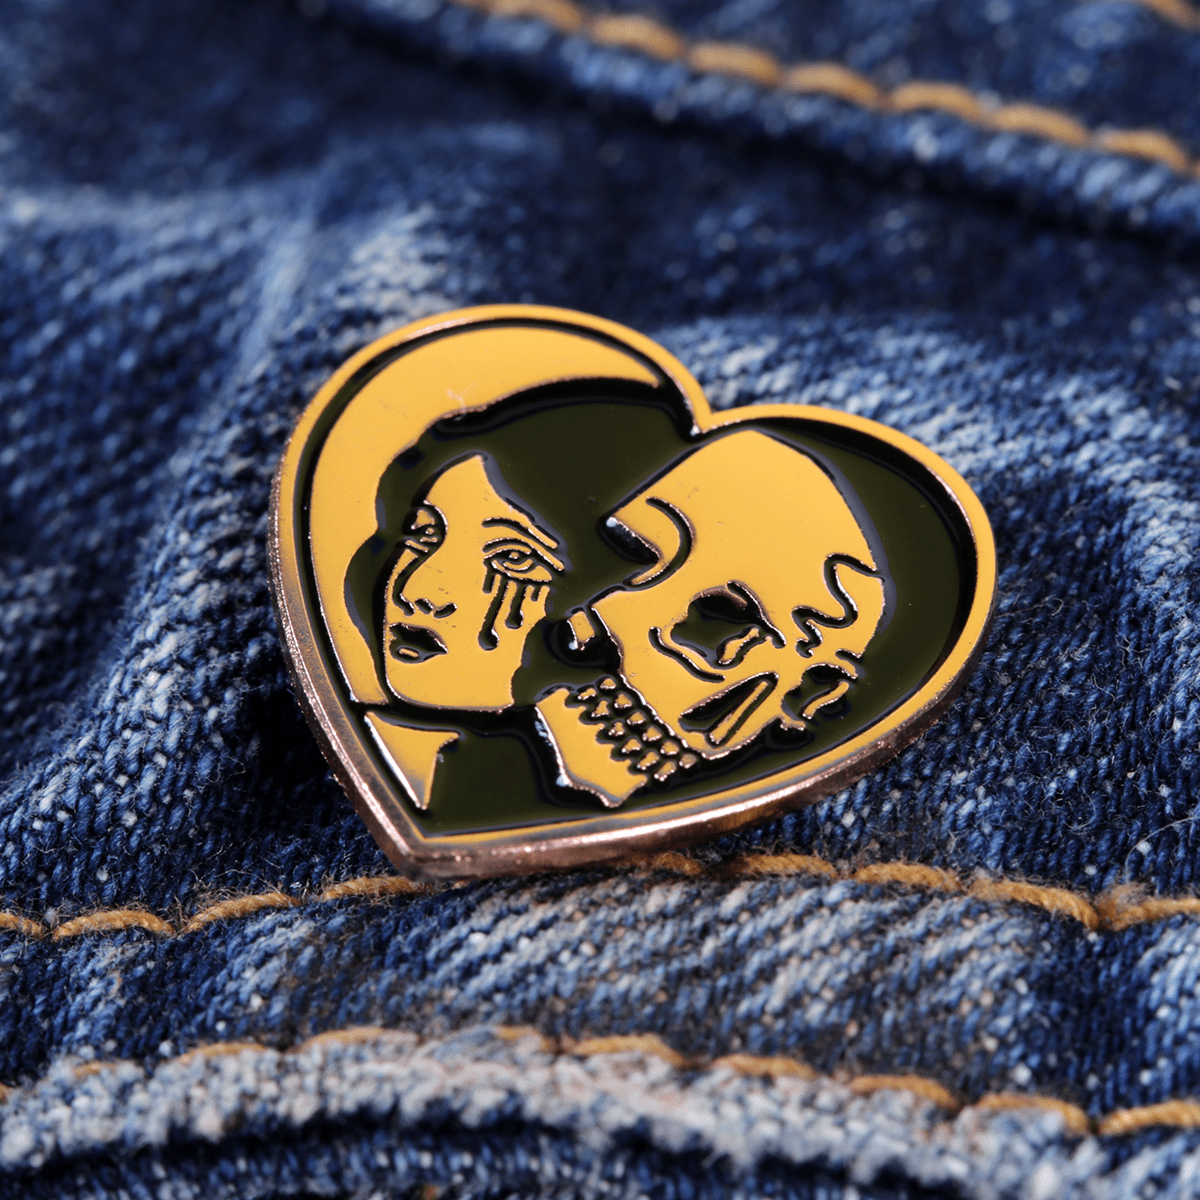 Enamel pin, enamel pins, South of Hell